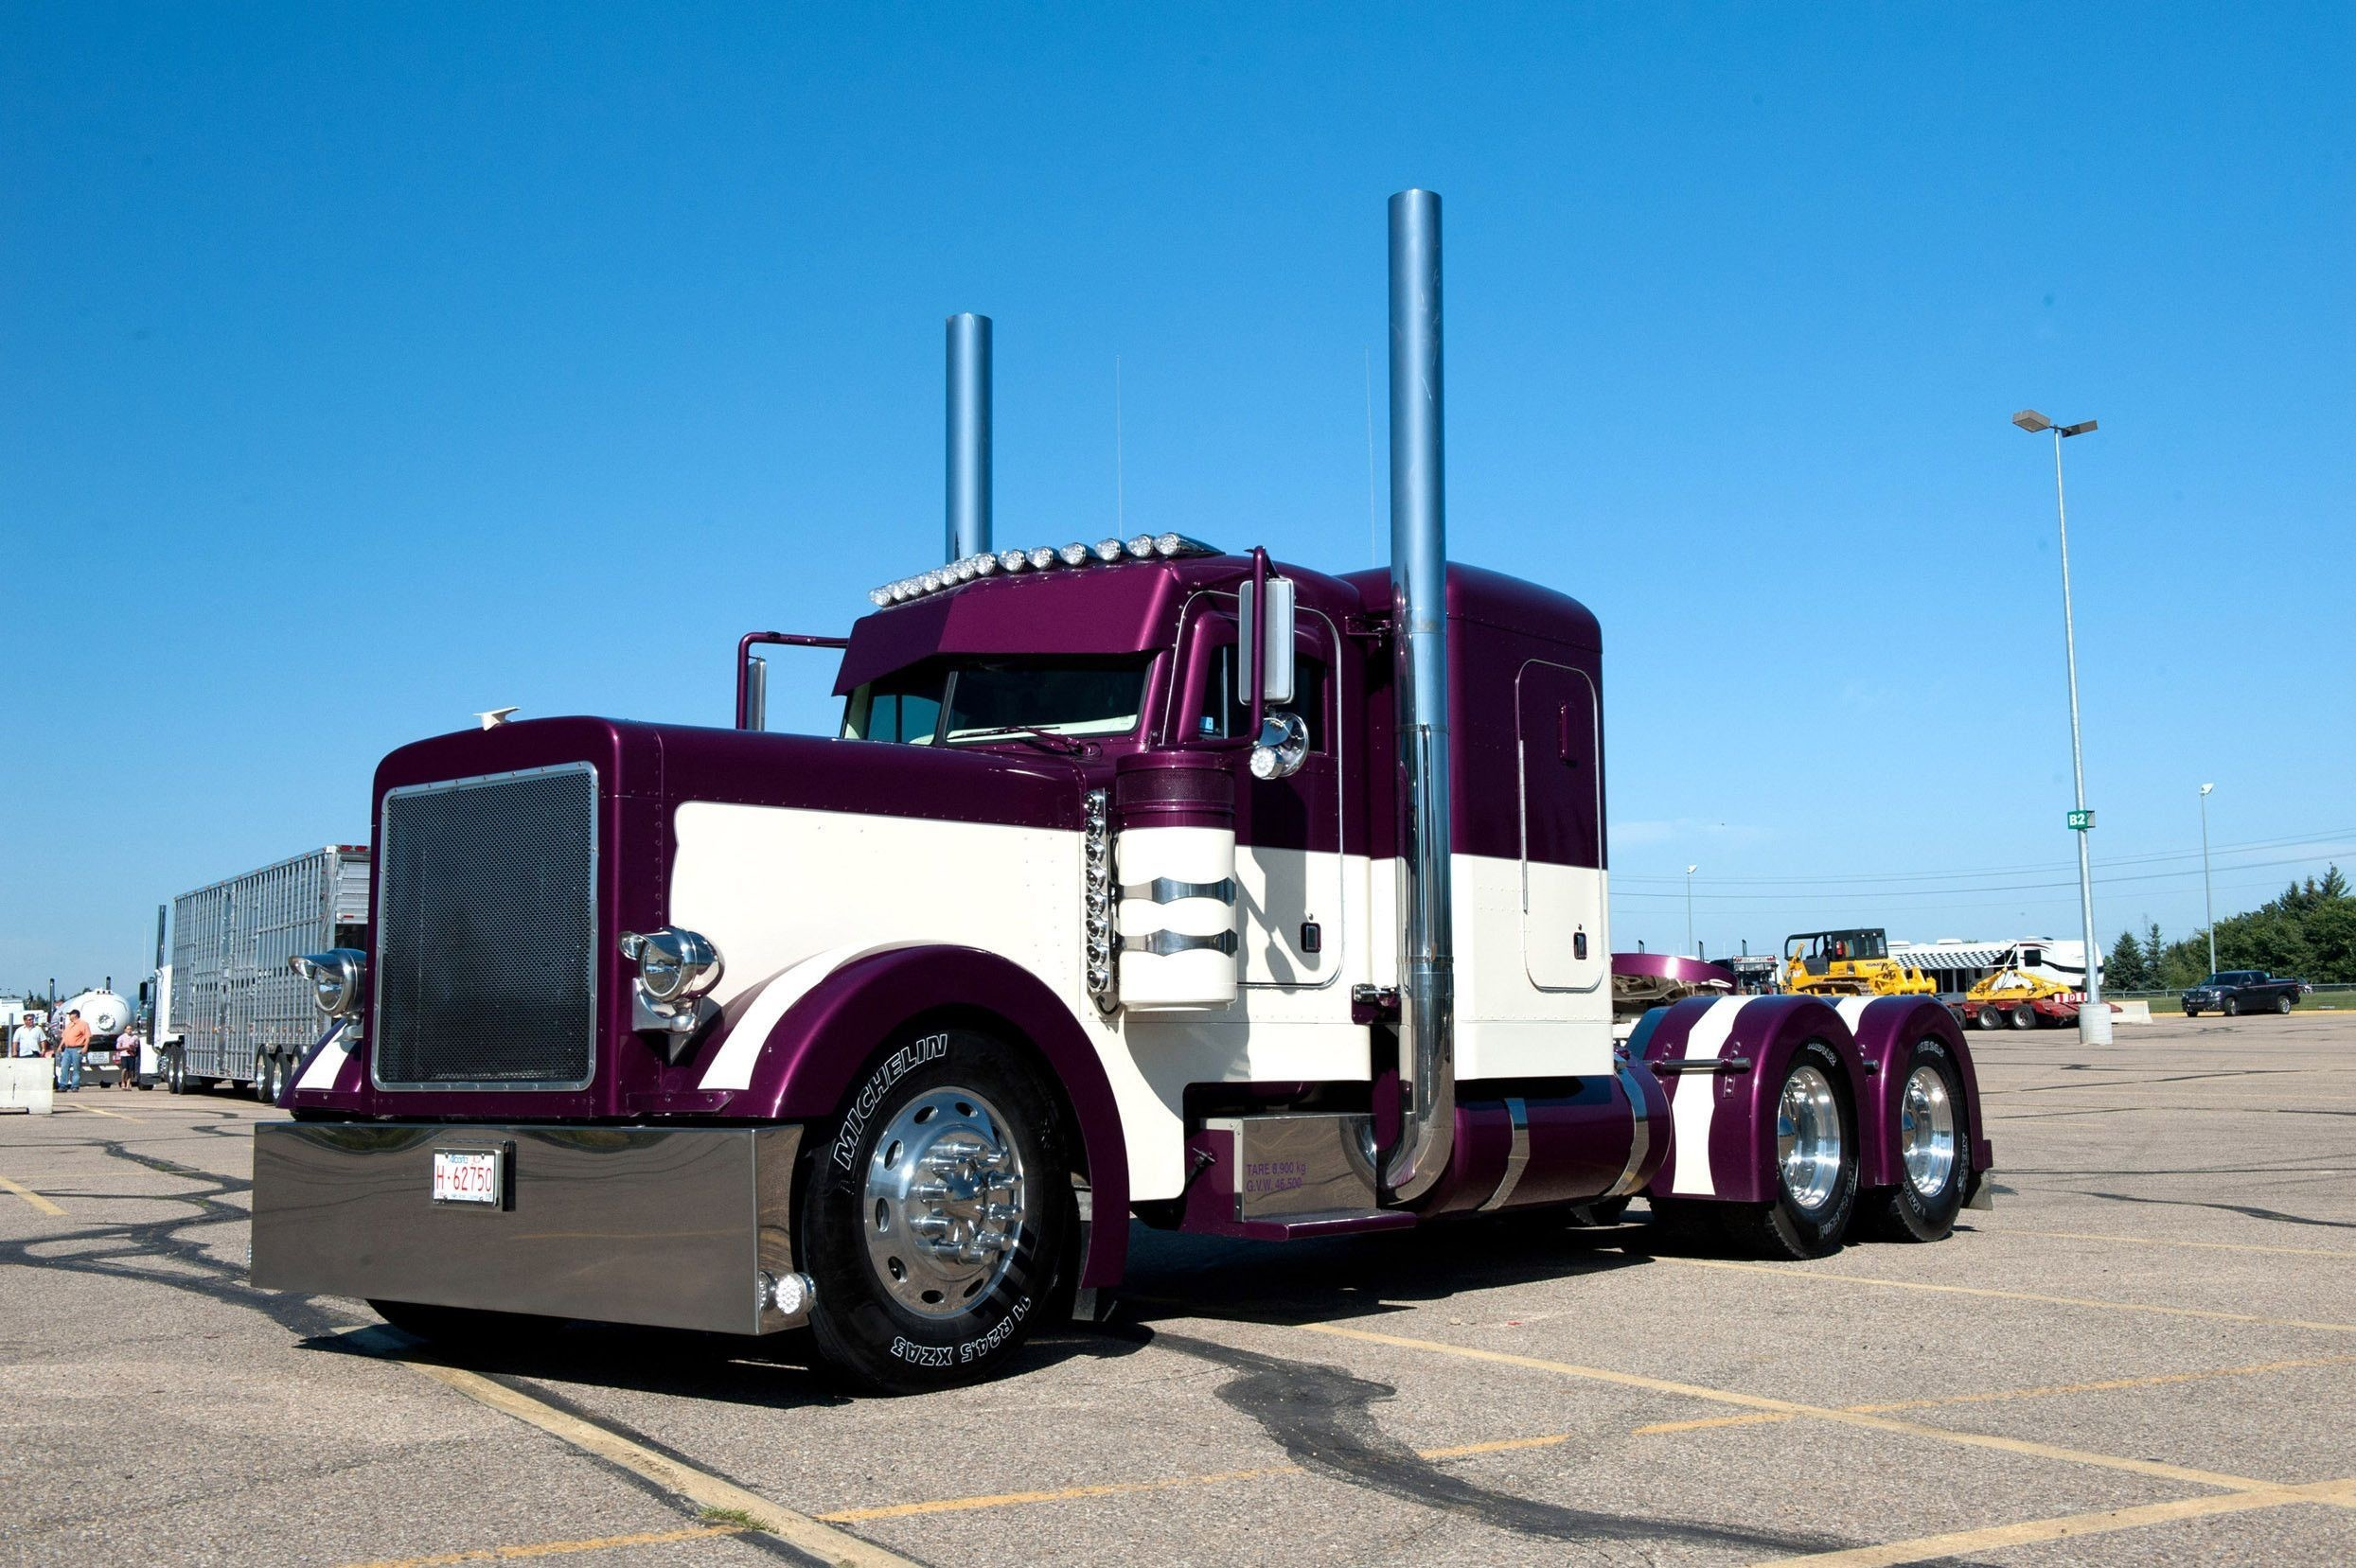 2489x1657 3010x2003 Semi trucks tractor rigs peterbilt wallpaper | 1920x1278 | 53836 .